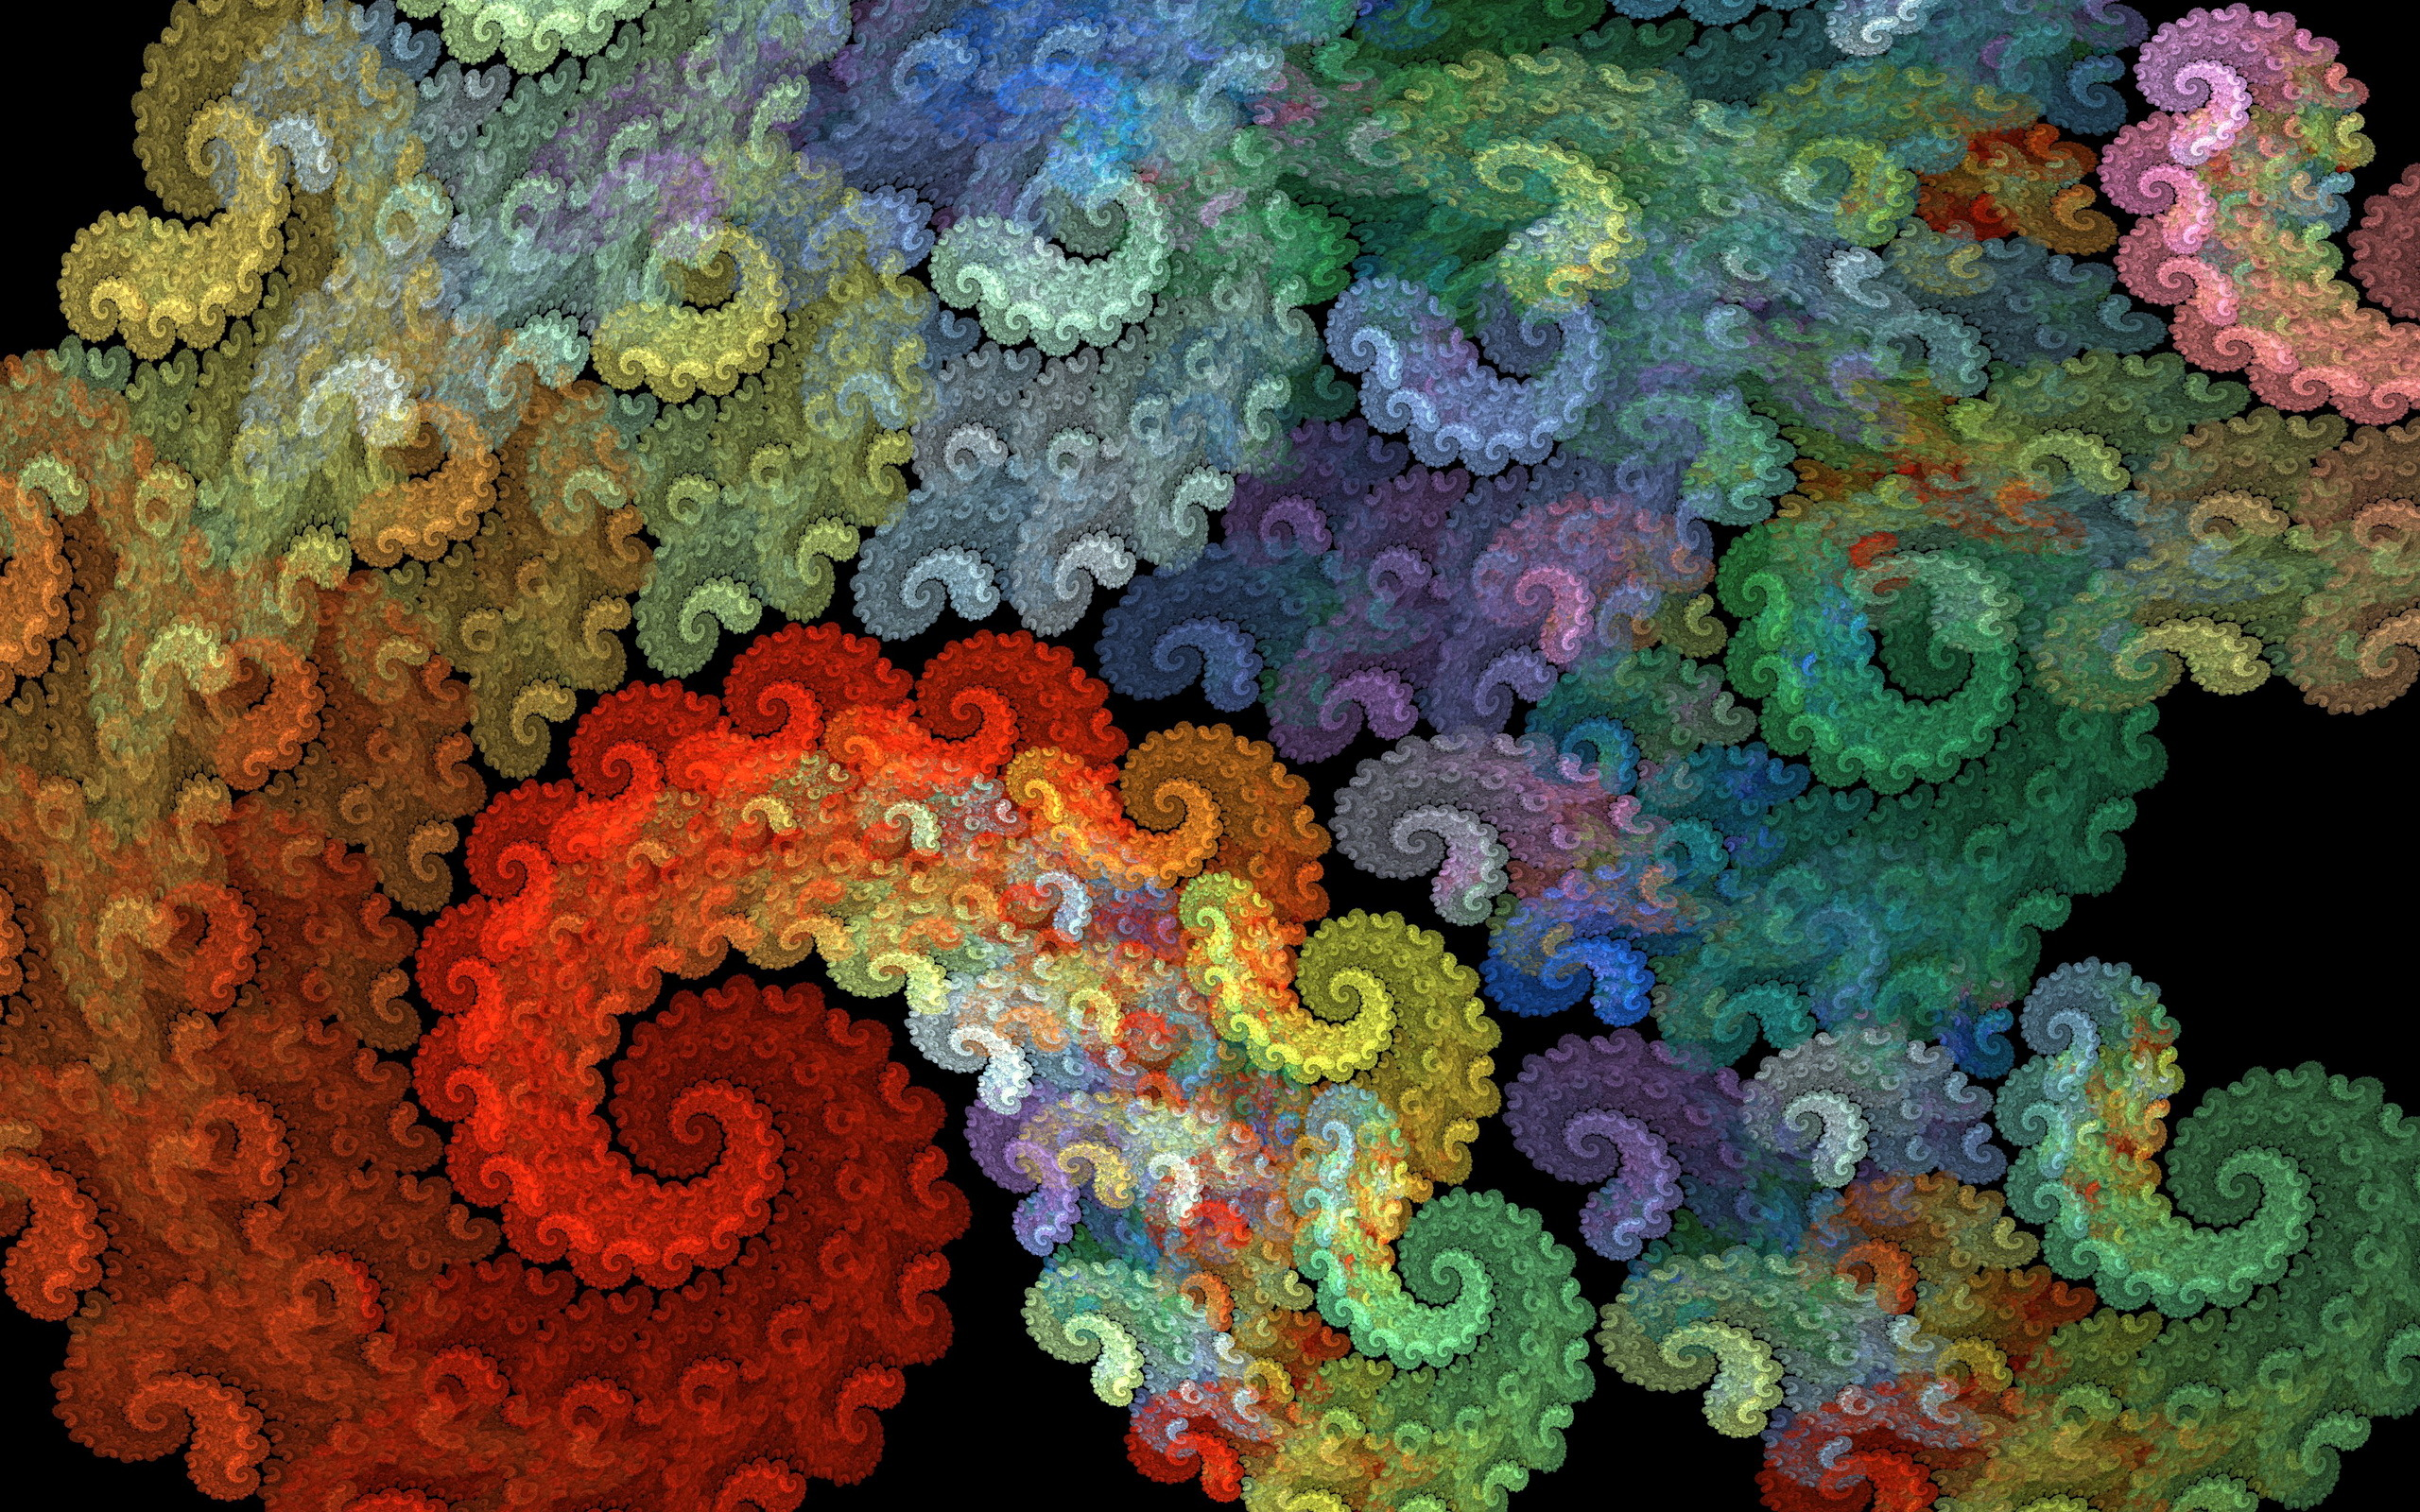 Colorful Spiral Abstraction3882112092 - Colorful Spiral Abstraction - Spiral, Colorful, Abstraction, abstract